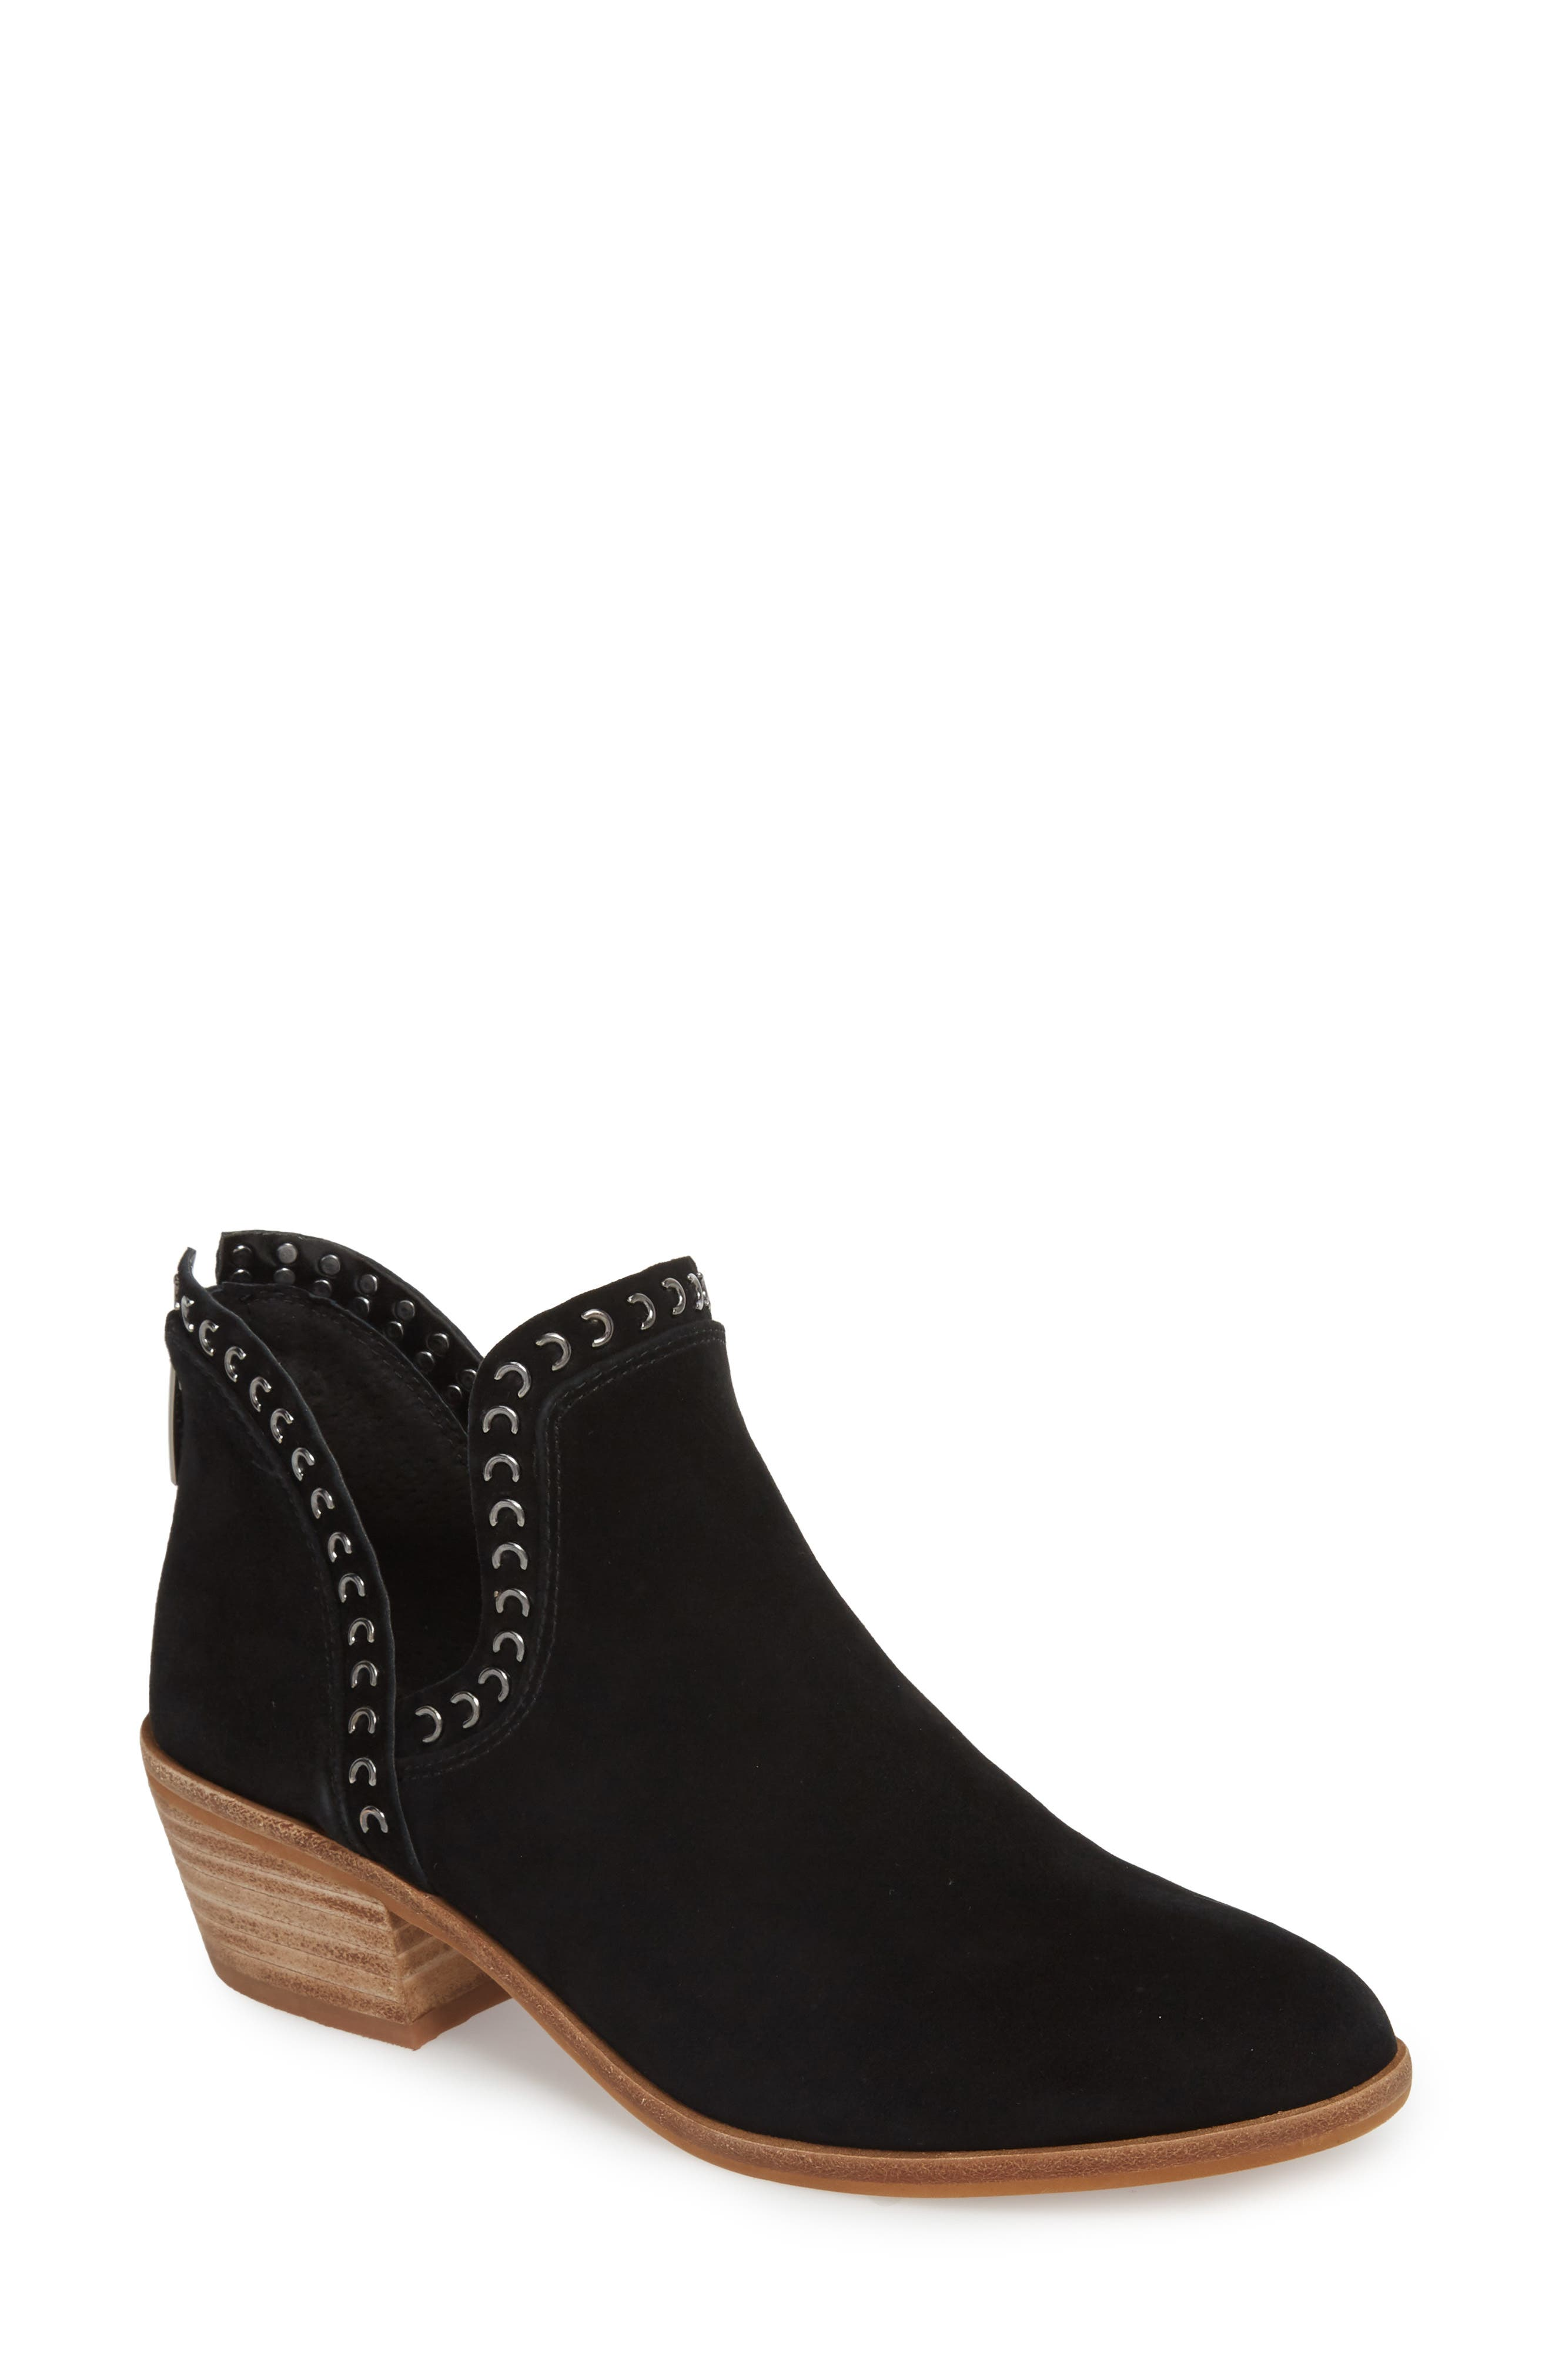 VINCE CAMUTO, Prafinta Boot, Main thumbnail 1, color, BLACK SUEDE